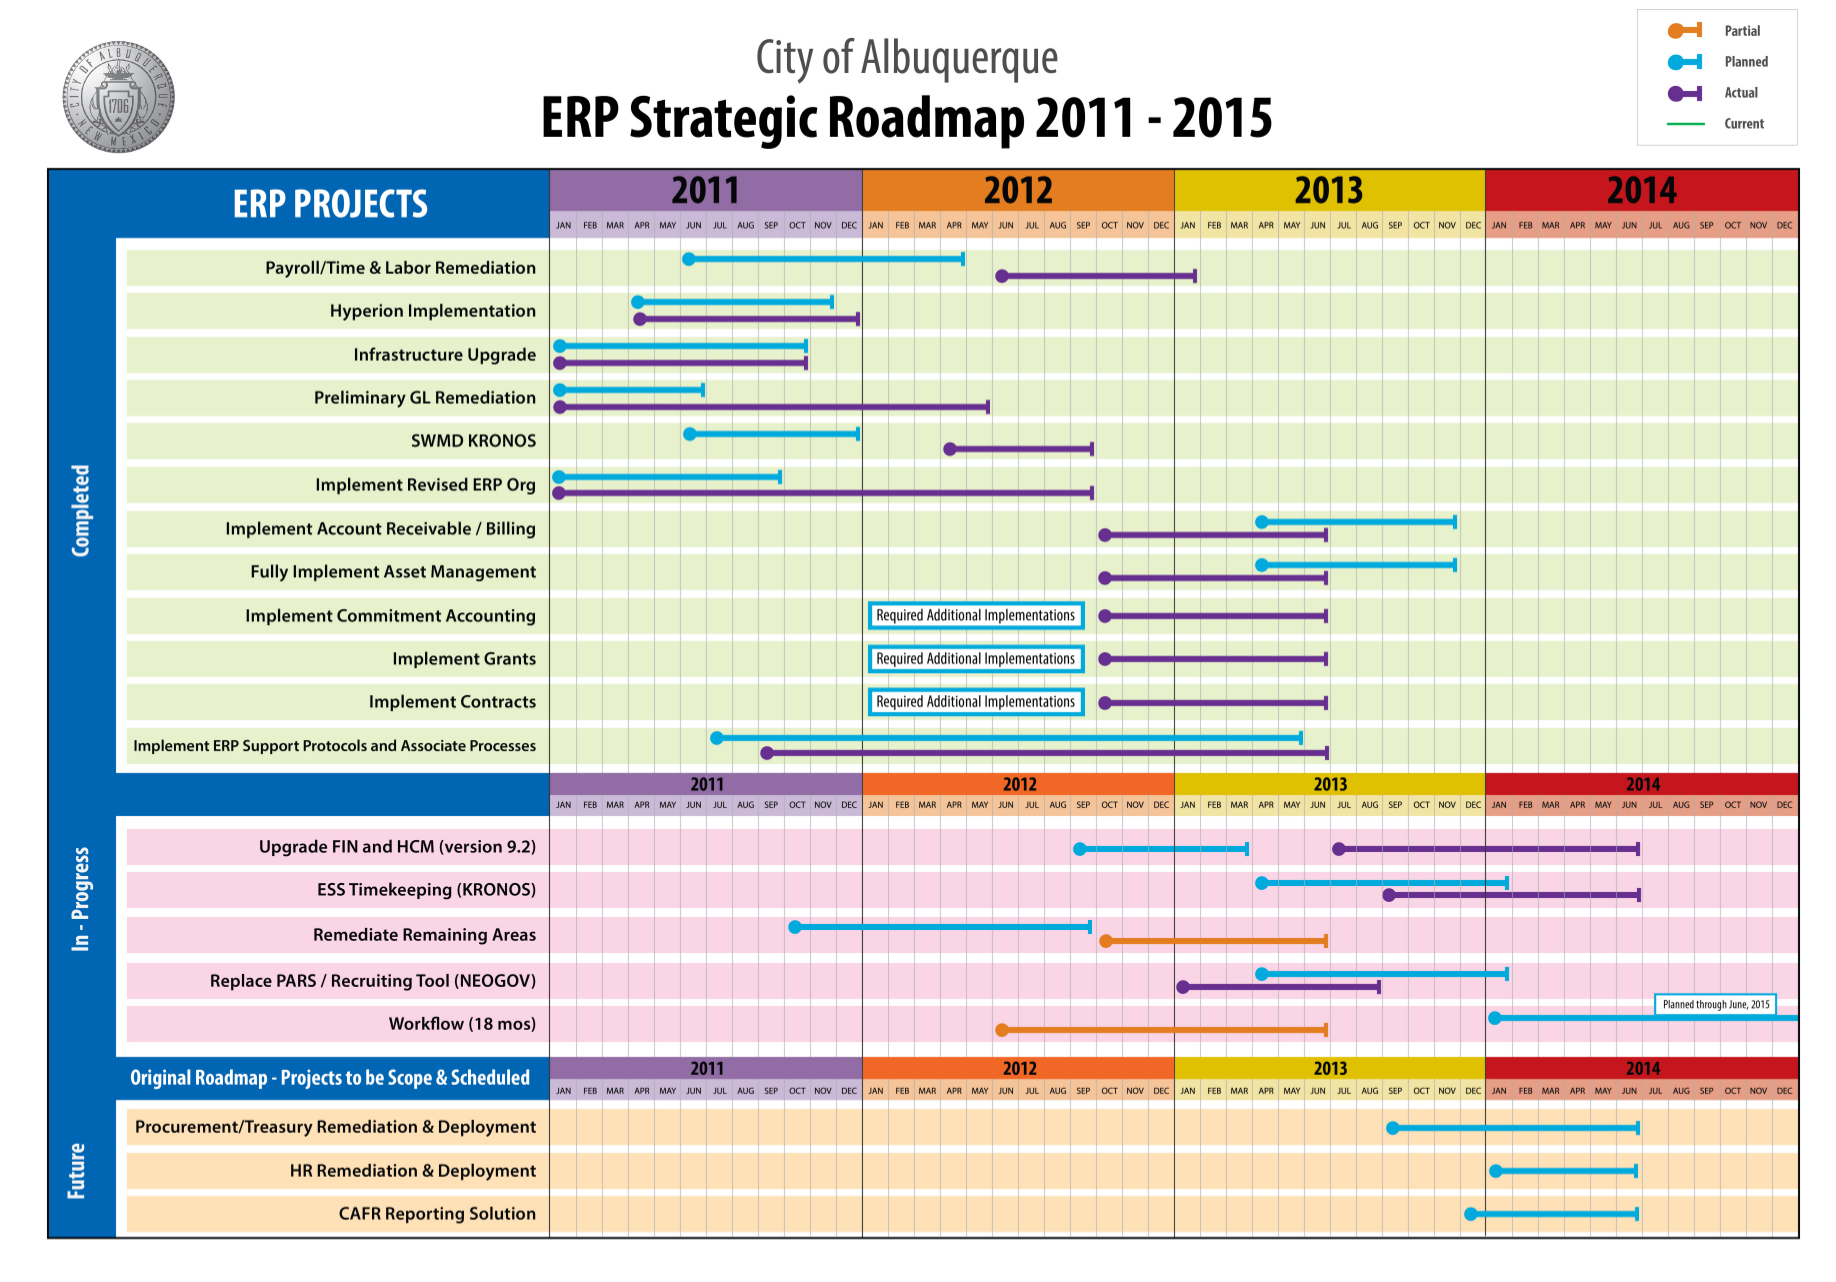 erp implementation project plan template - 2013 erp roadmap